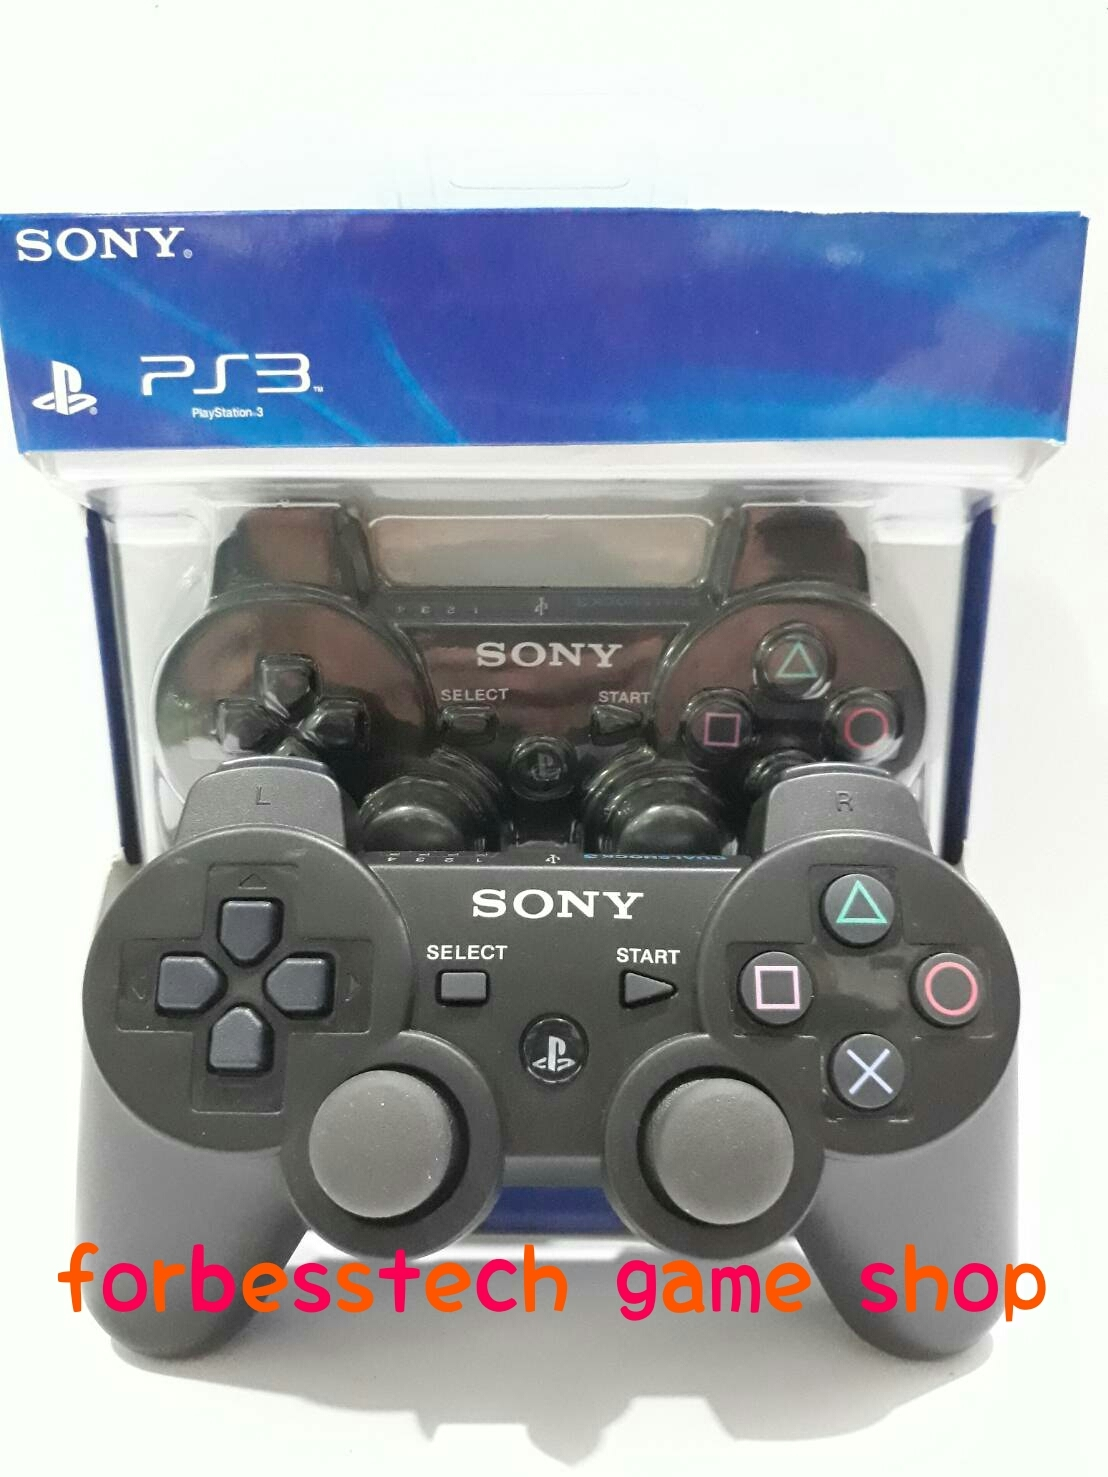 Sony Stick Ps 3 Op Controller Wireless Hitam Page Daftar Stik Ps3 Ori Pabrik Playstation 2nd Werles Cek Harganya Source Gamepad